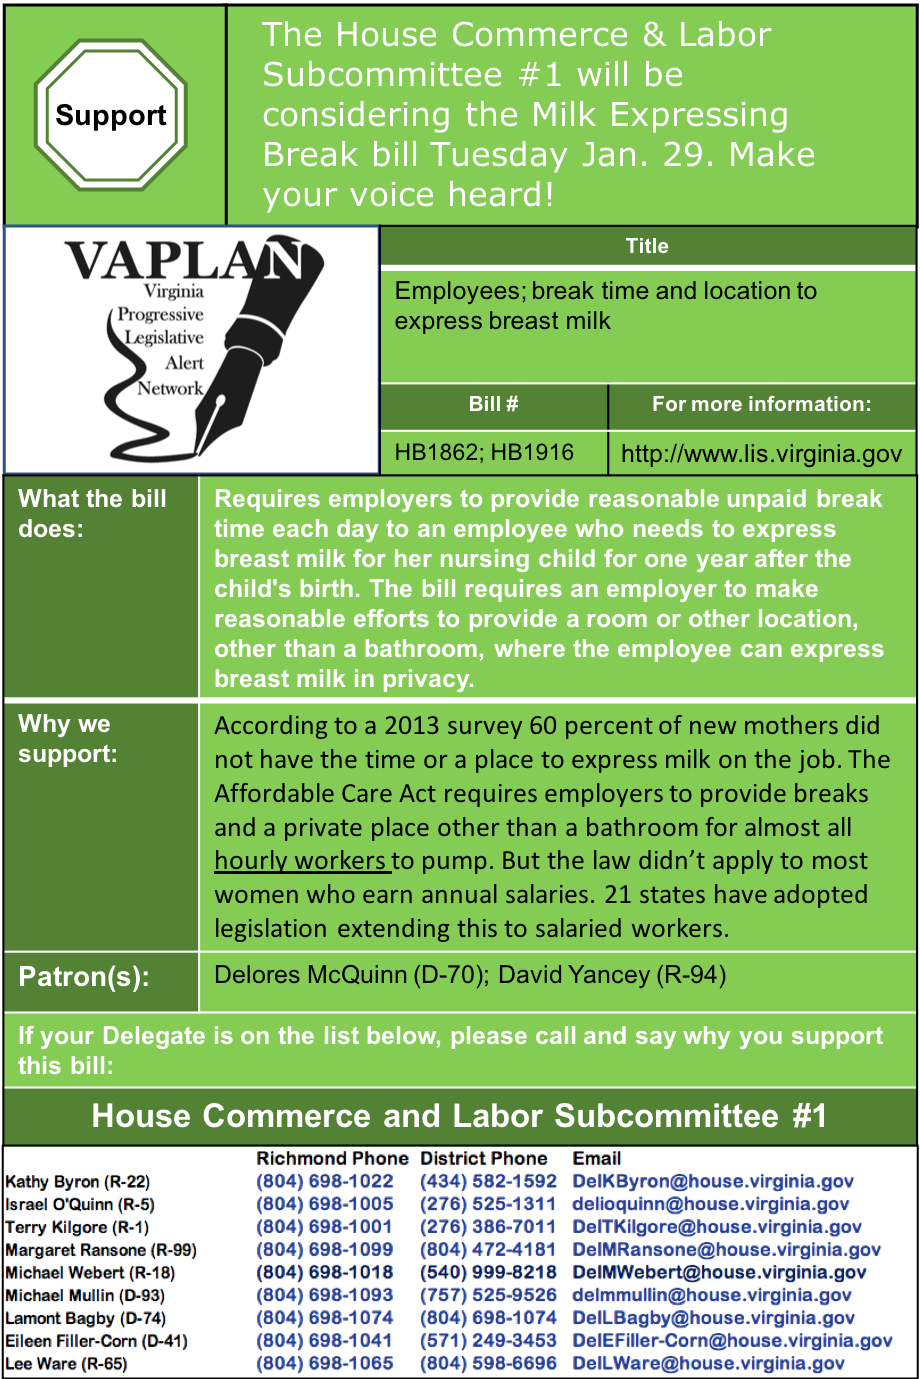 ALERT: Require employers to provide break and space for worker's to express milk, House Commerce & Labor Subcommittee 1, Tuesday Jan. 29.